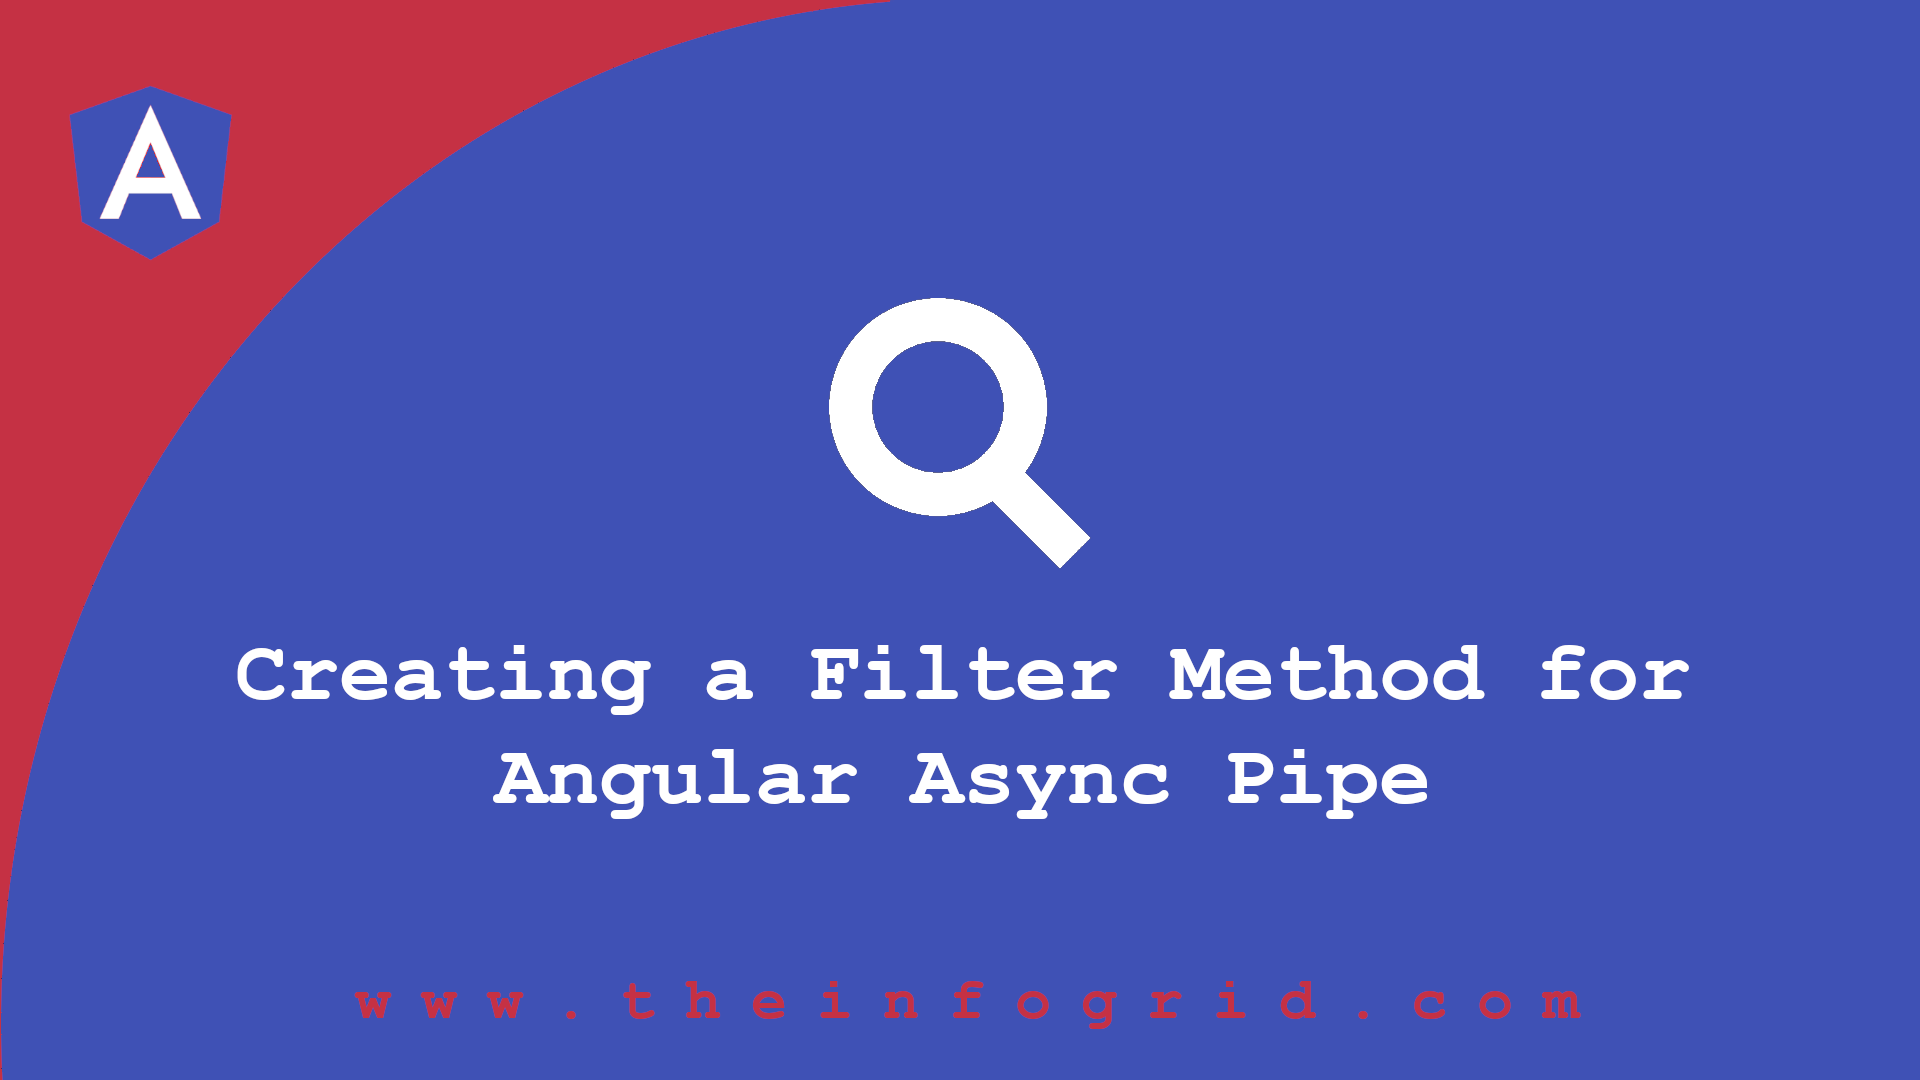 Creating a Filter Method for Angular Async Pipe